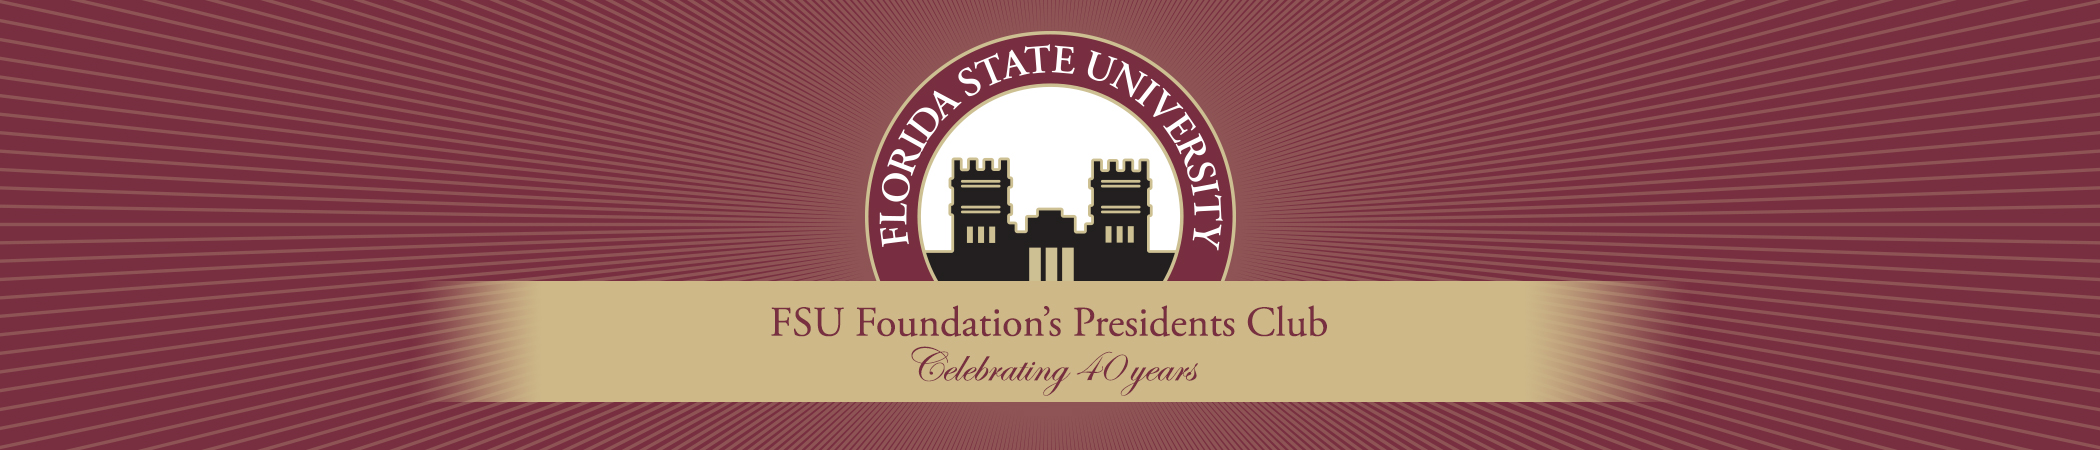 FSU Foundation's Presidents Club - Celebrating 40 years